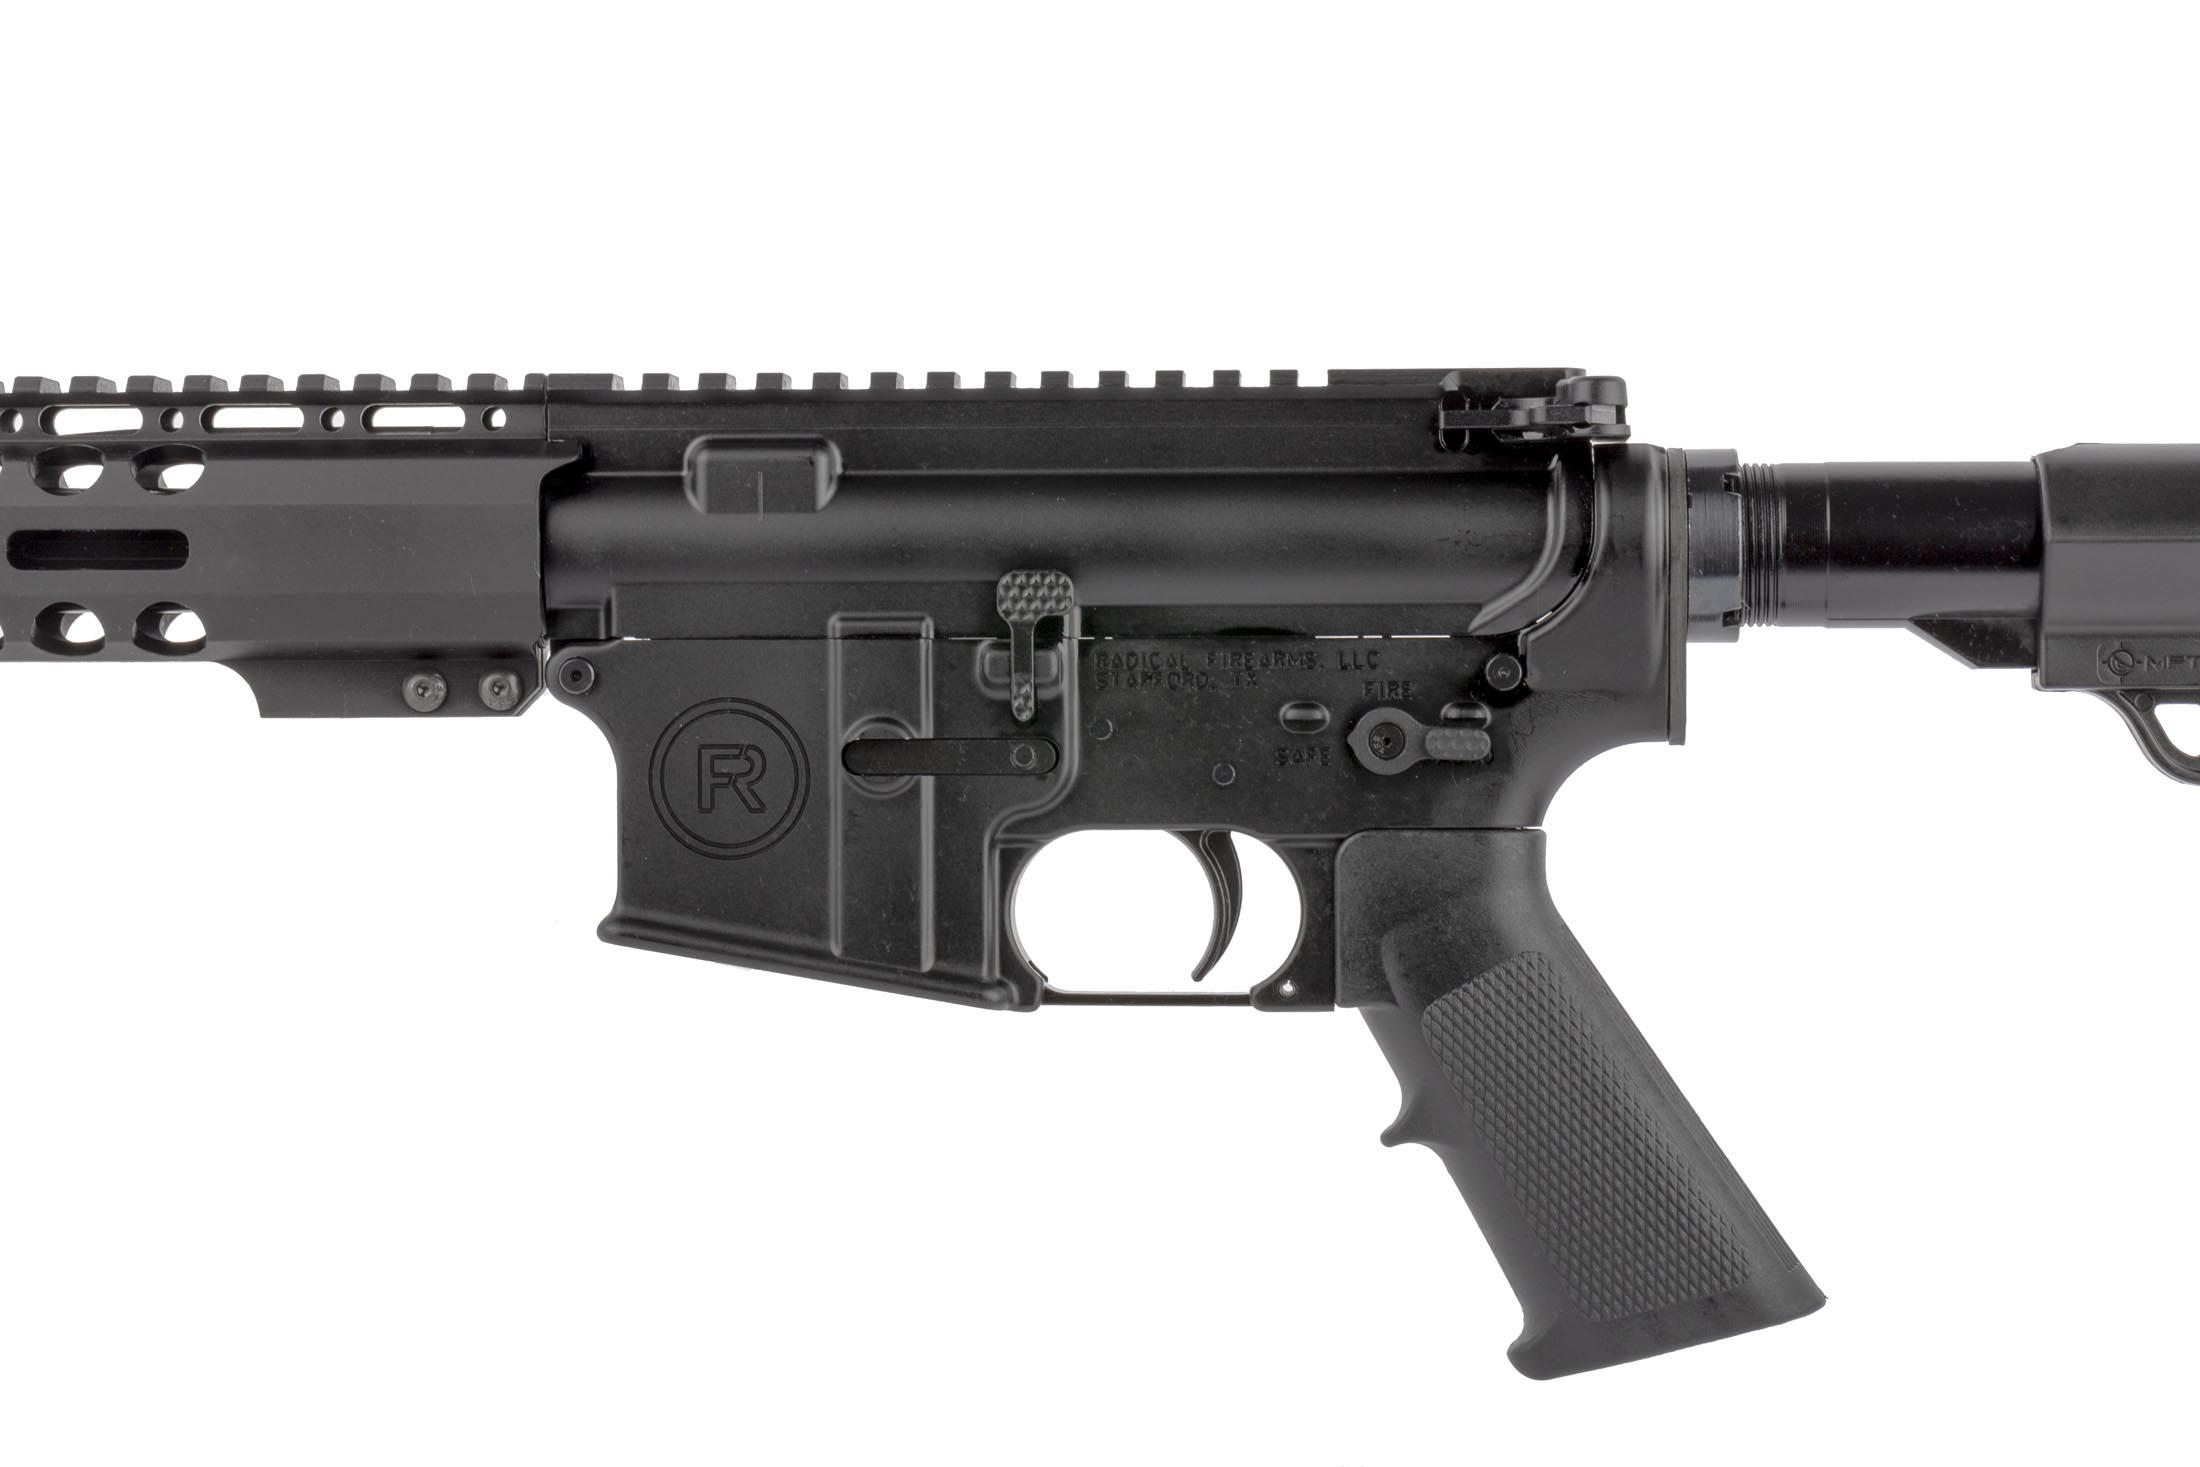 Radical Firearms 16in complete AR-15 rifle features an ambidextrous safety selector and enhanced bolt catch